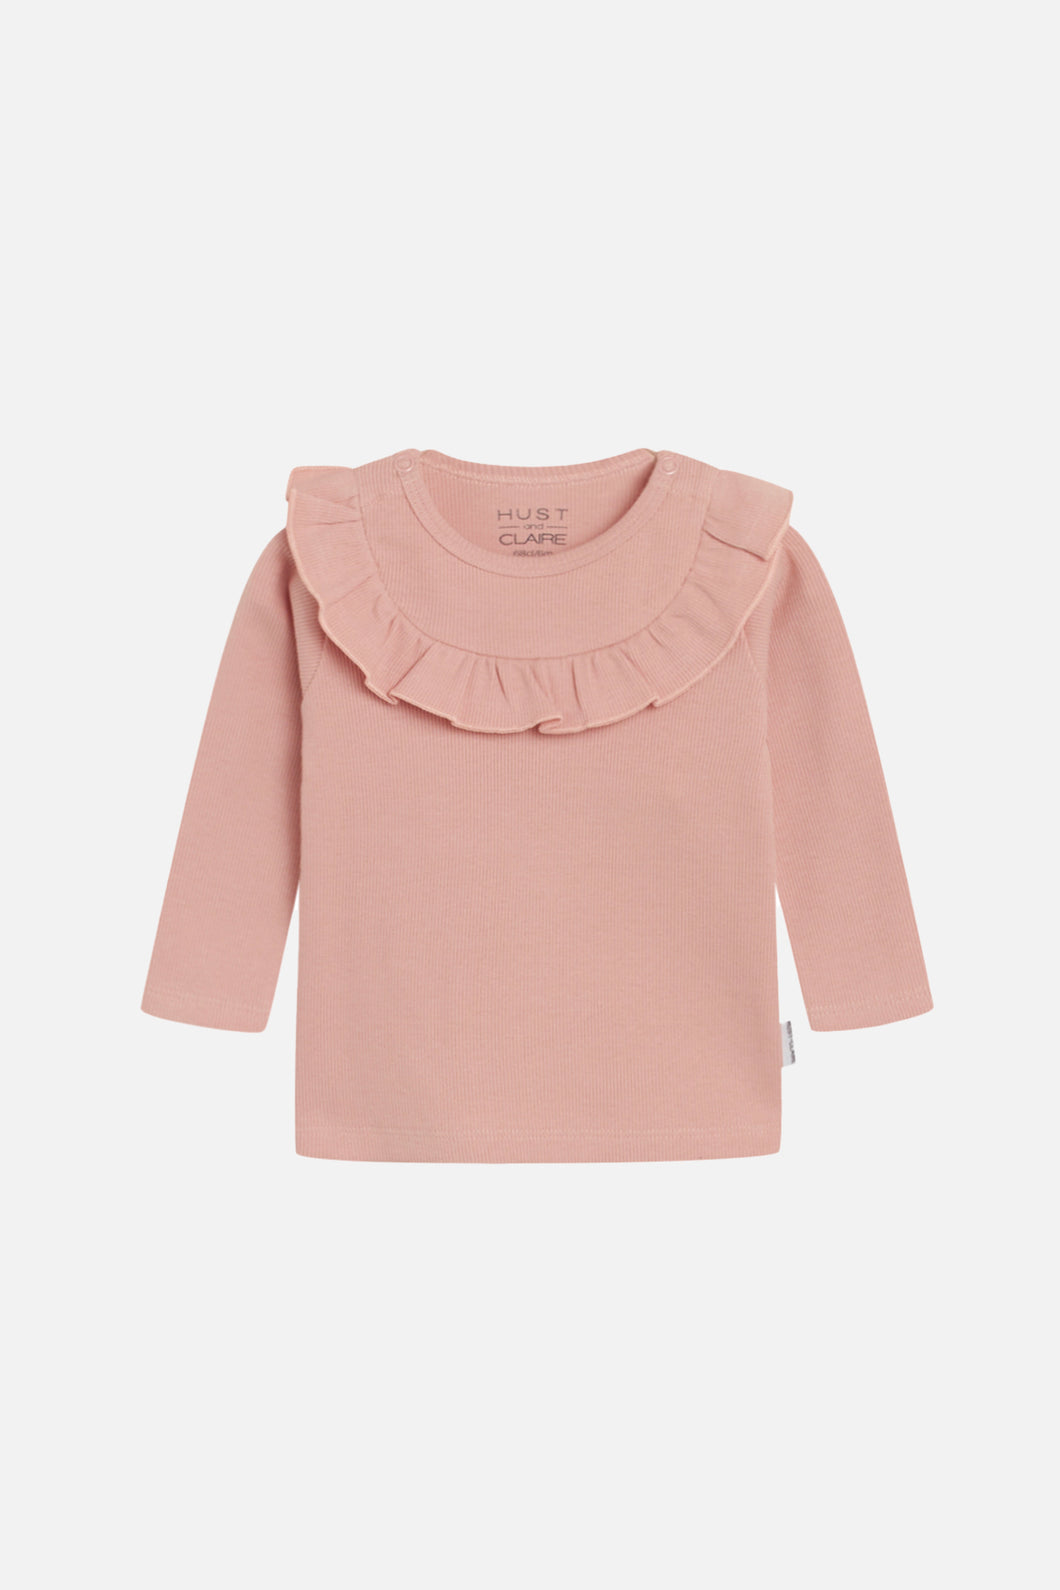 Hust&Claire - T-shirt Almas - Baby Girl